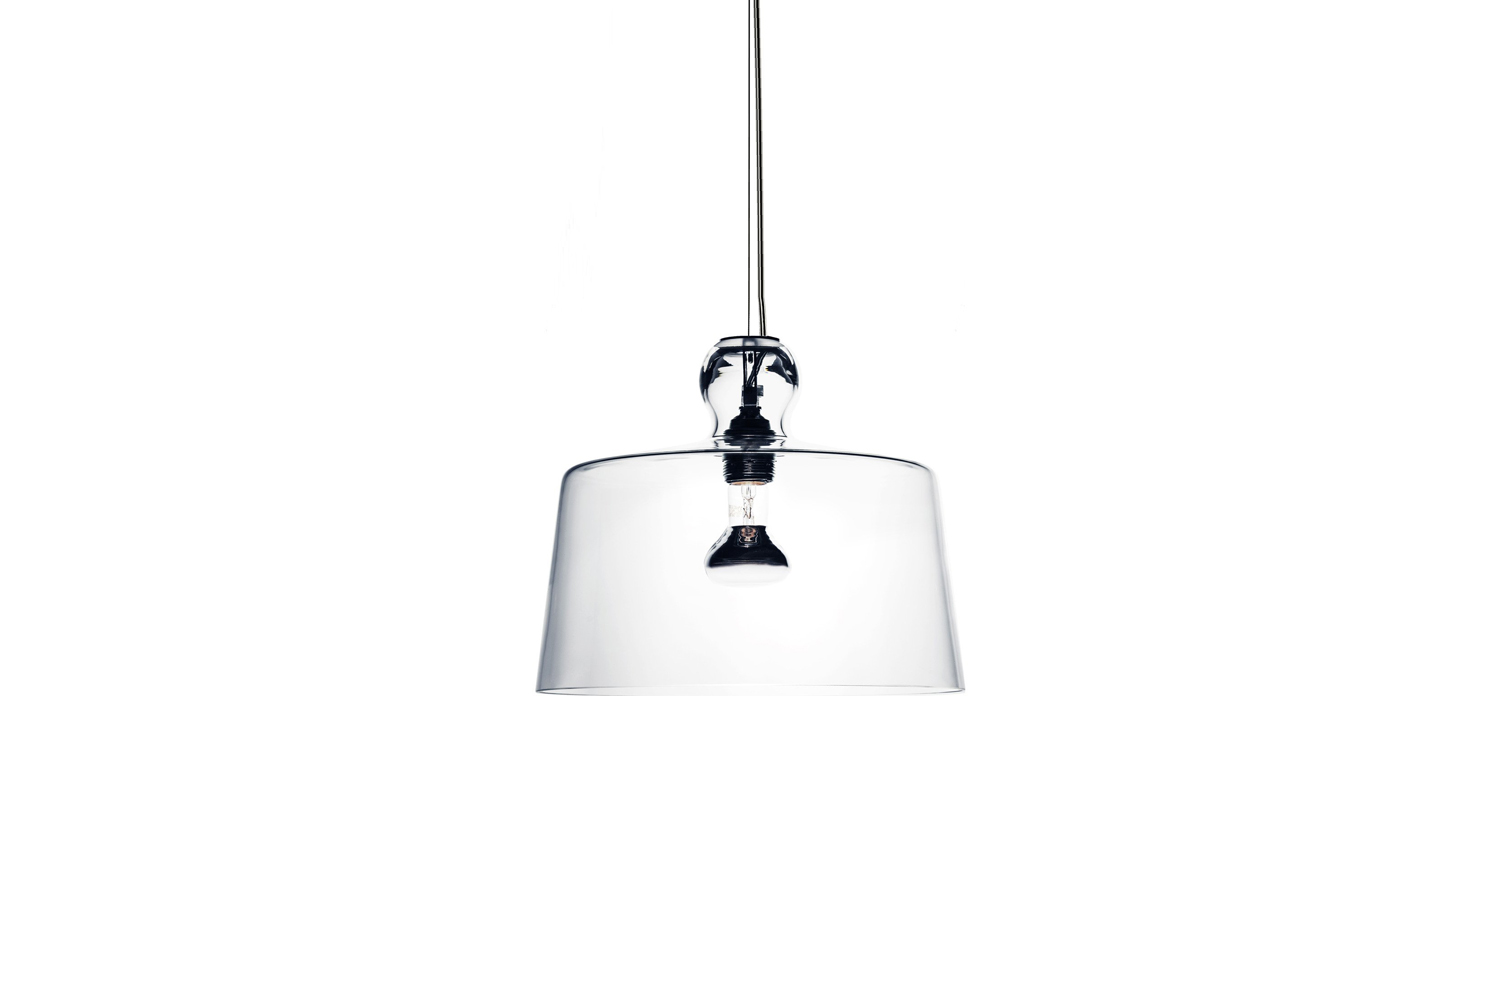 the michele de lucchi acquatinta pendant lamp is made with a lampshade in clear 14